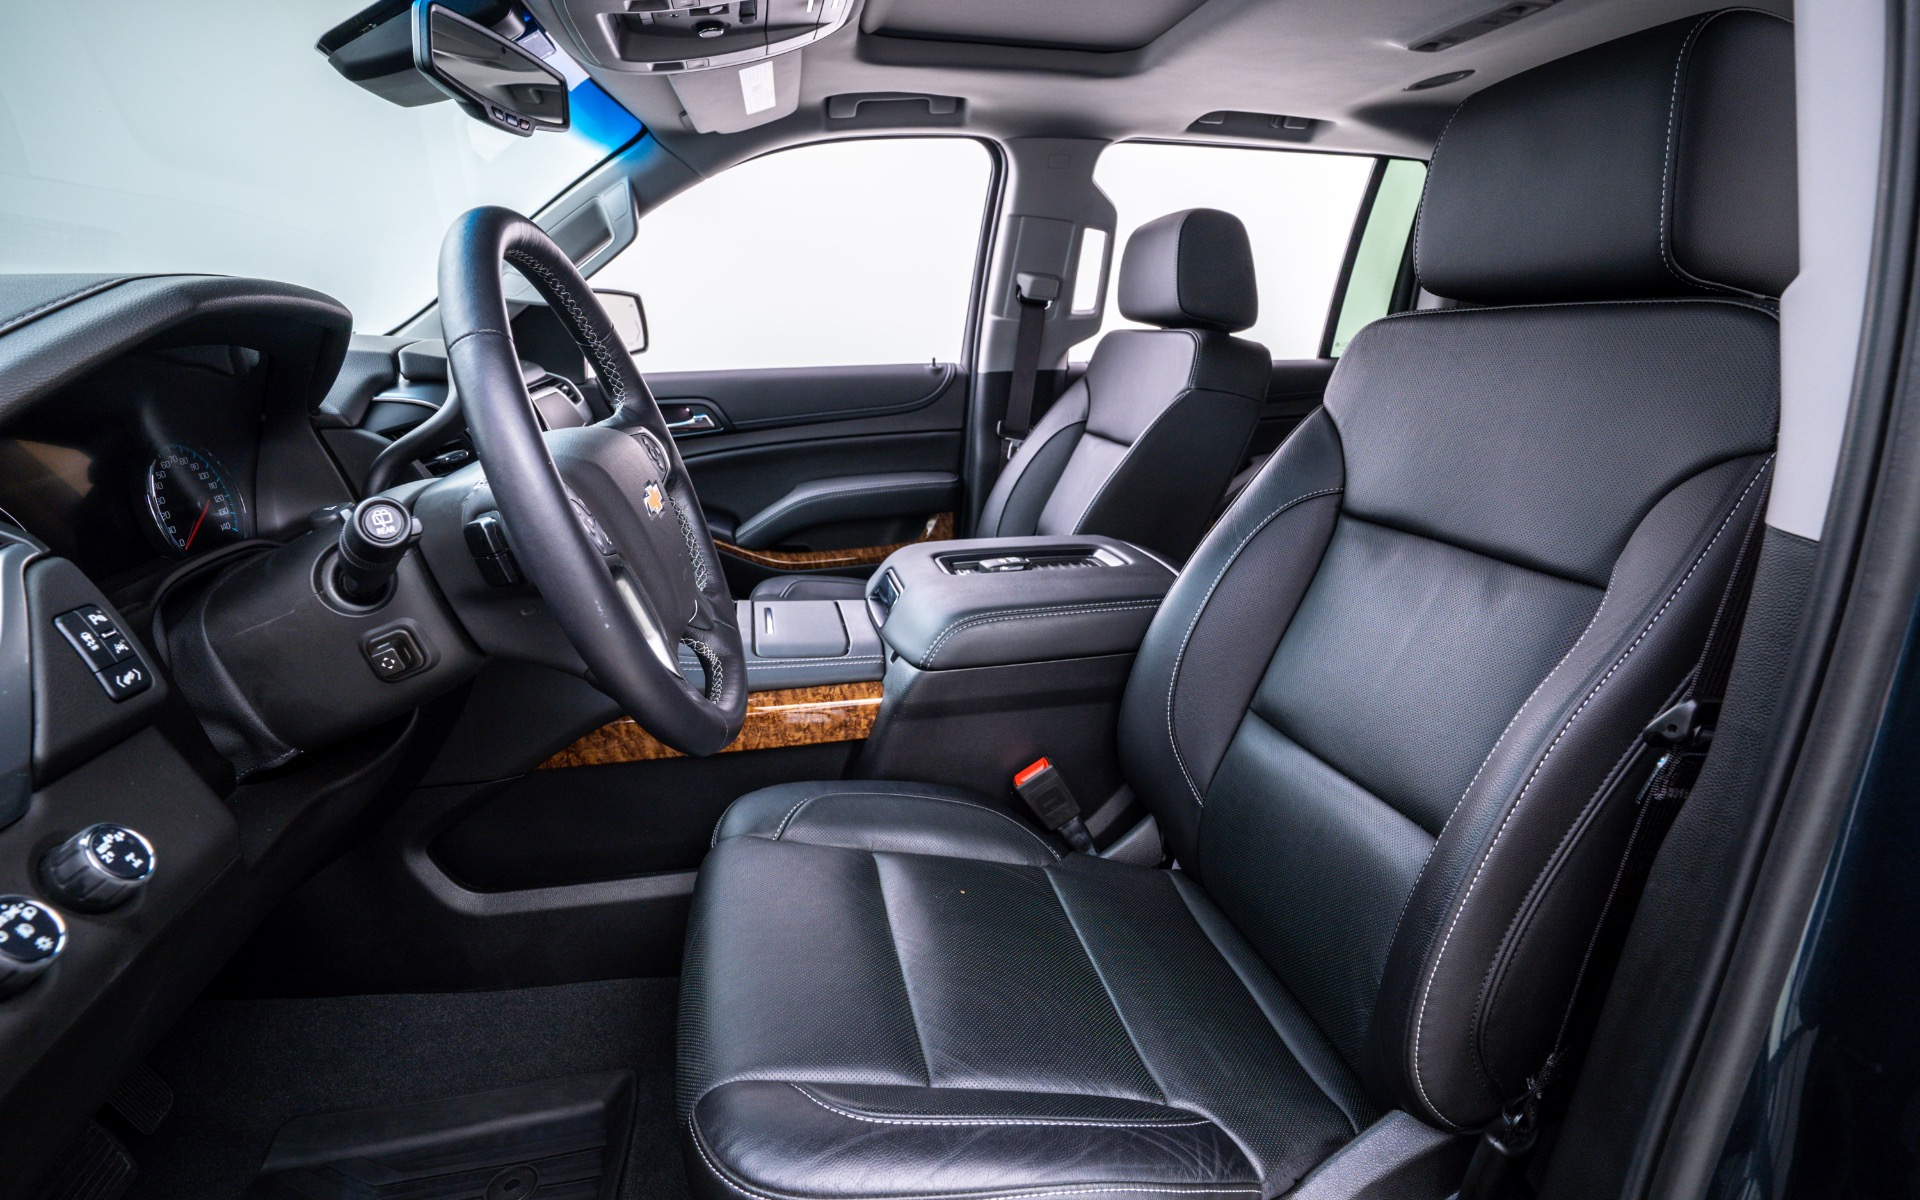 Used 2019 CHEVROLET SUBURBAN Premier 1500 | Norwell, MA